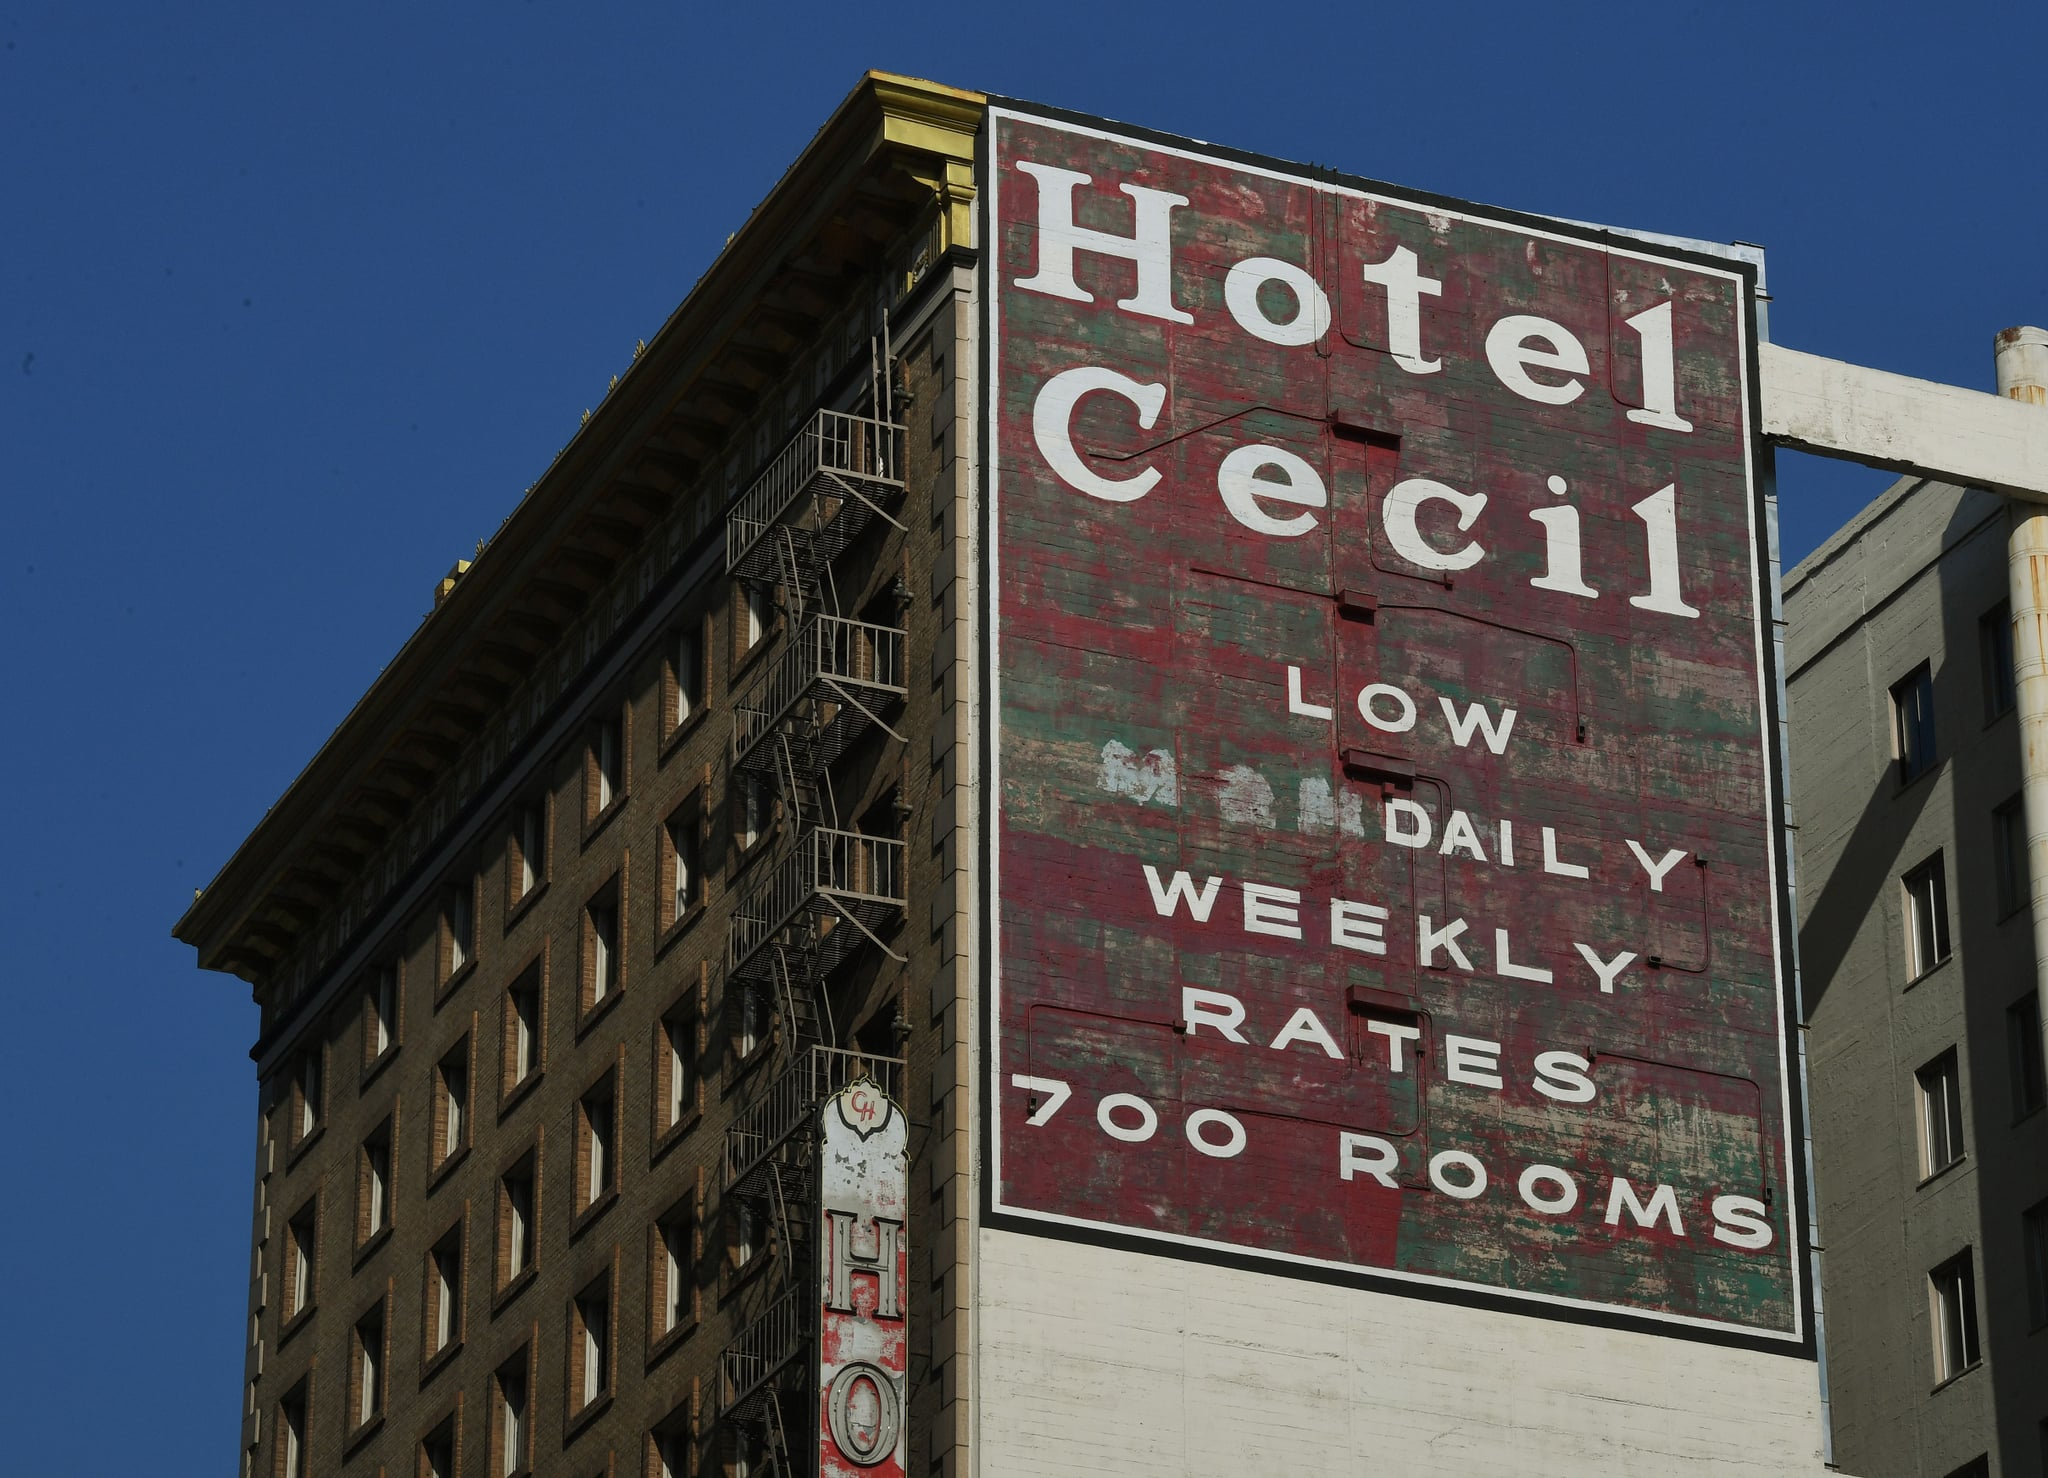 The infamous Hotel Cecil was named a historic-cultural monument by the City Council in a unanimous 10-0 vote in Los Angeles, California on February 28, 2017The hotel, built in 1924,  has been the scene of at least 15 murders and suicides as well as the temporary home of serial killers Richard Ramirez and Jack Unterweger. It's most recent tragedy was when 21-year-old Canadian Elisa Lam's naked body was found in the building's rooftop water tank after guests had complained about the taste of the water.  / AFP / Mark RALSTON        (Photo credit should read MARK RALSTON/AFP via Getty Images)